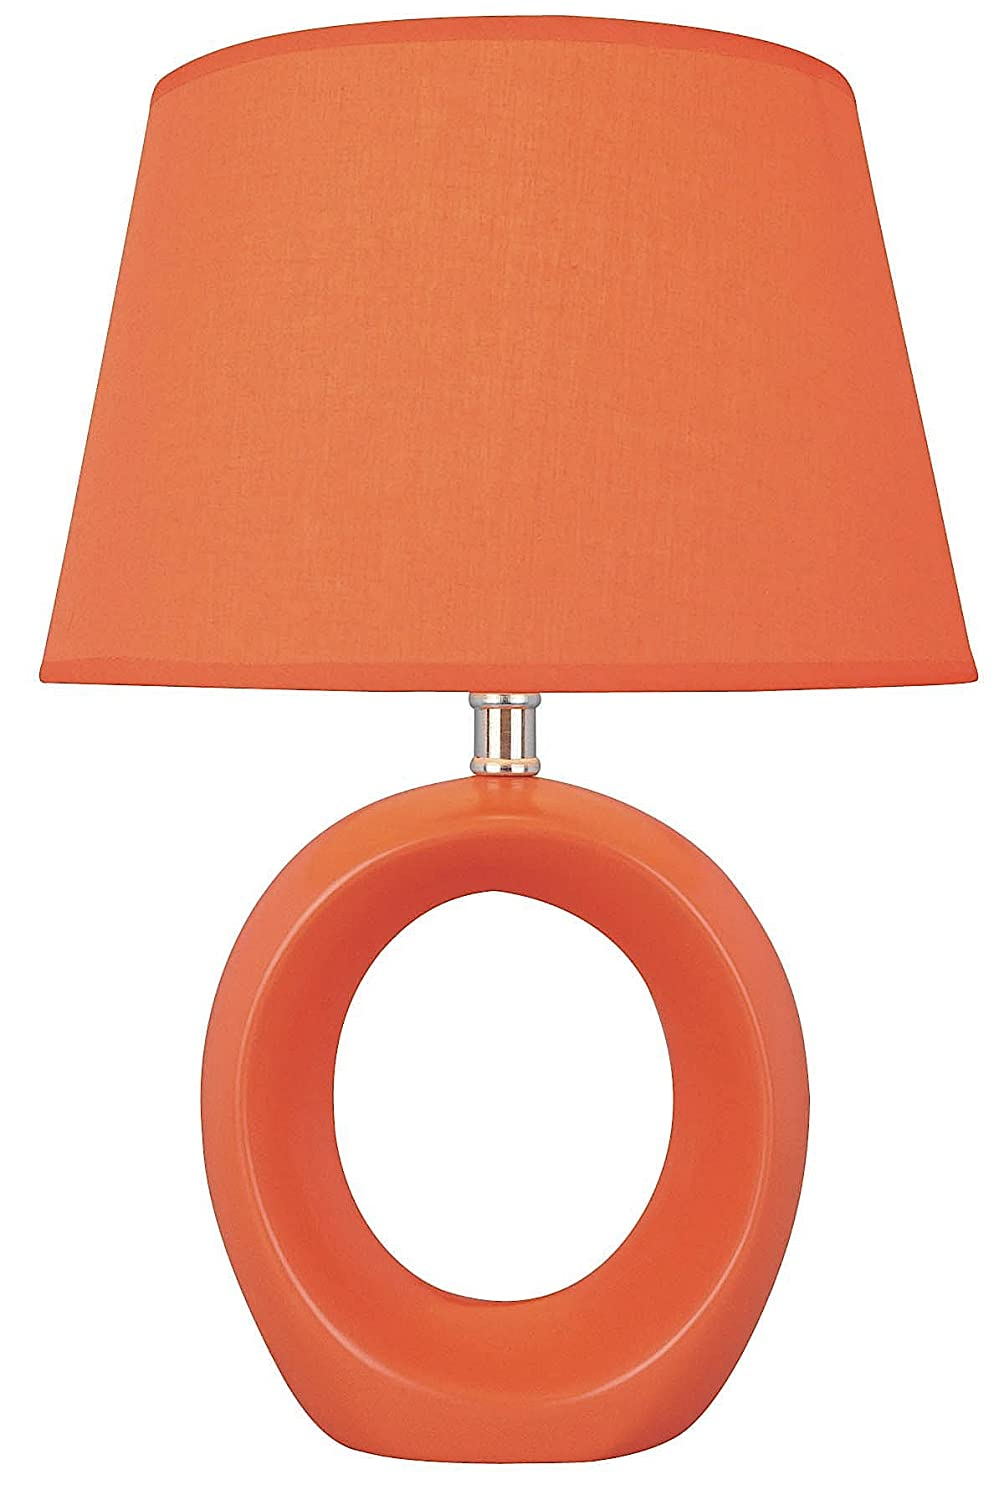 Lite source ls 20585orn viko table lamp orange with donut shaped lite source ls 20585orn viko table lamp orange with donut shaped body amazon geotapseo Gallery